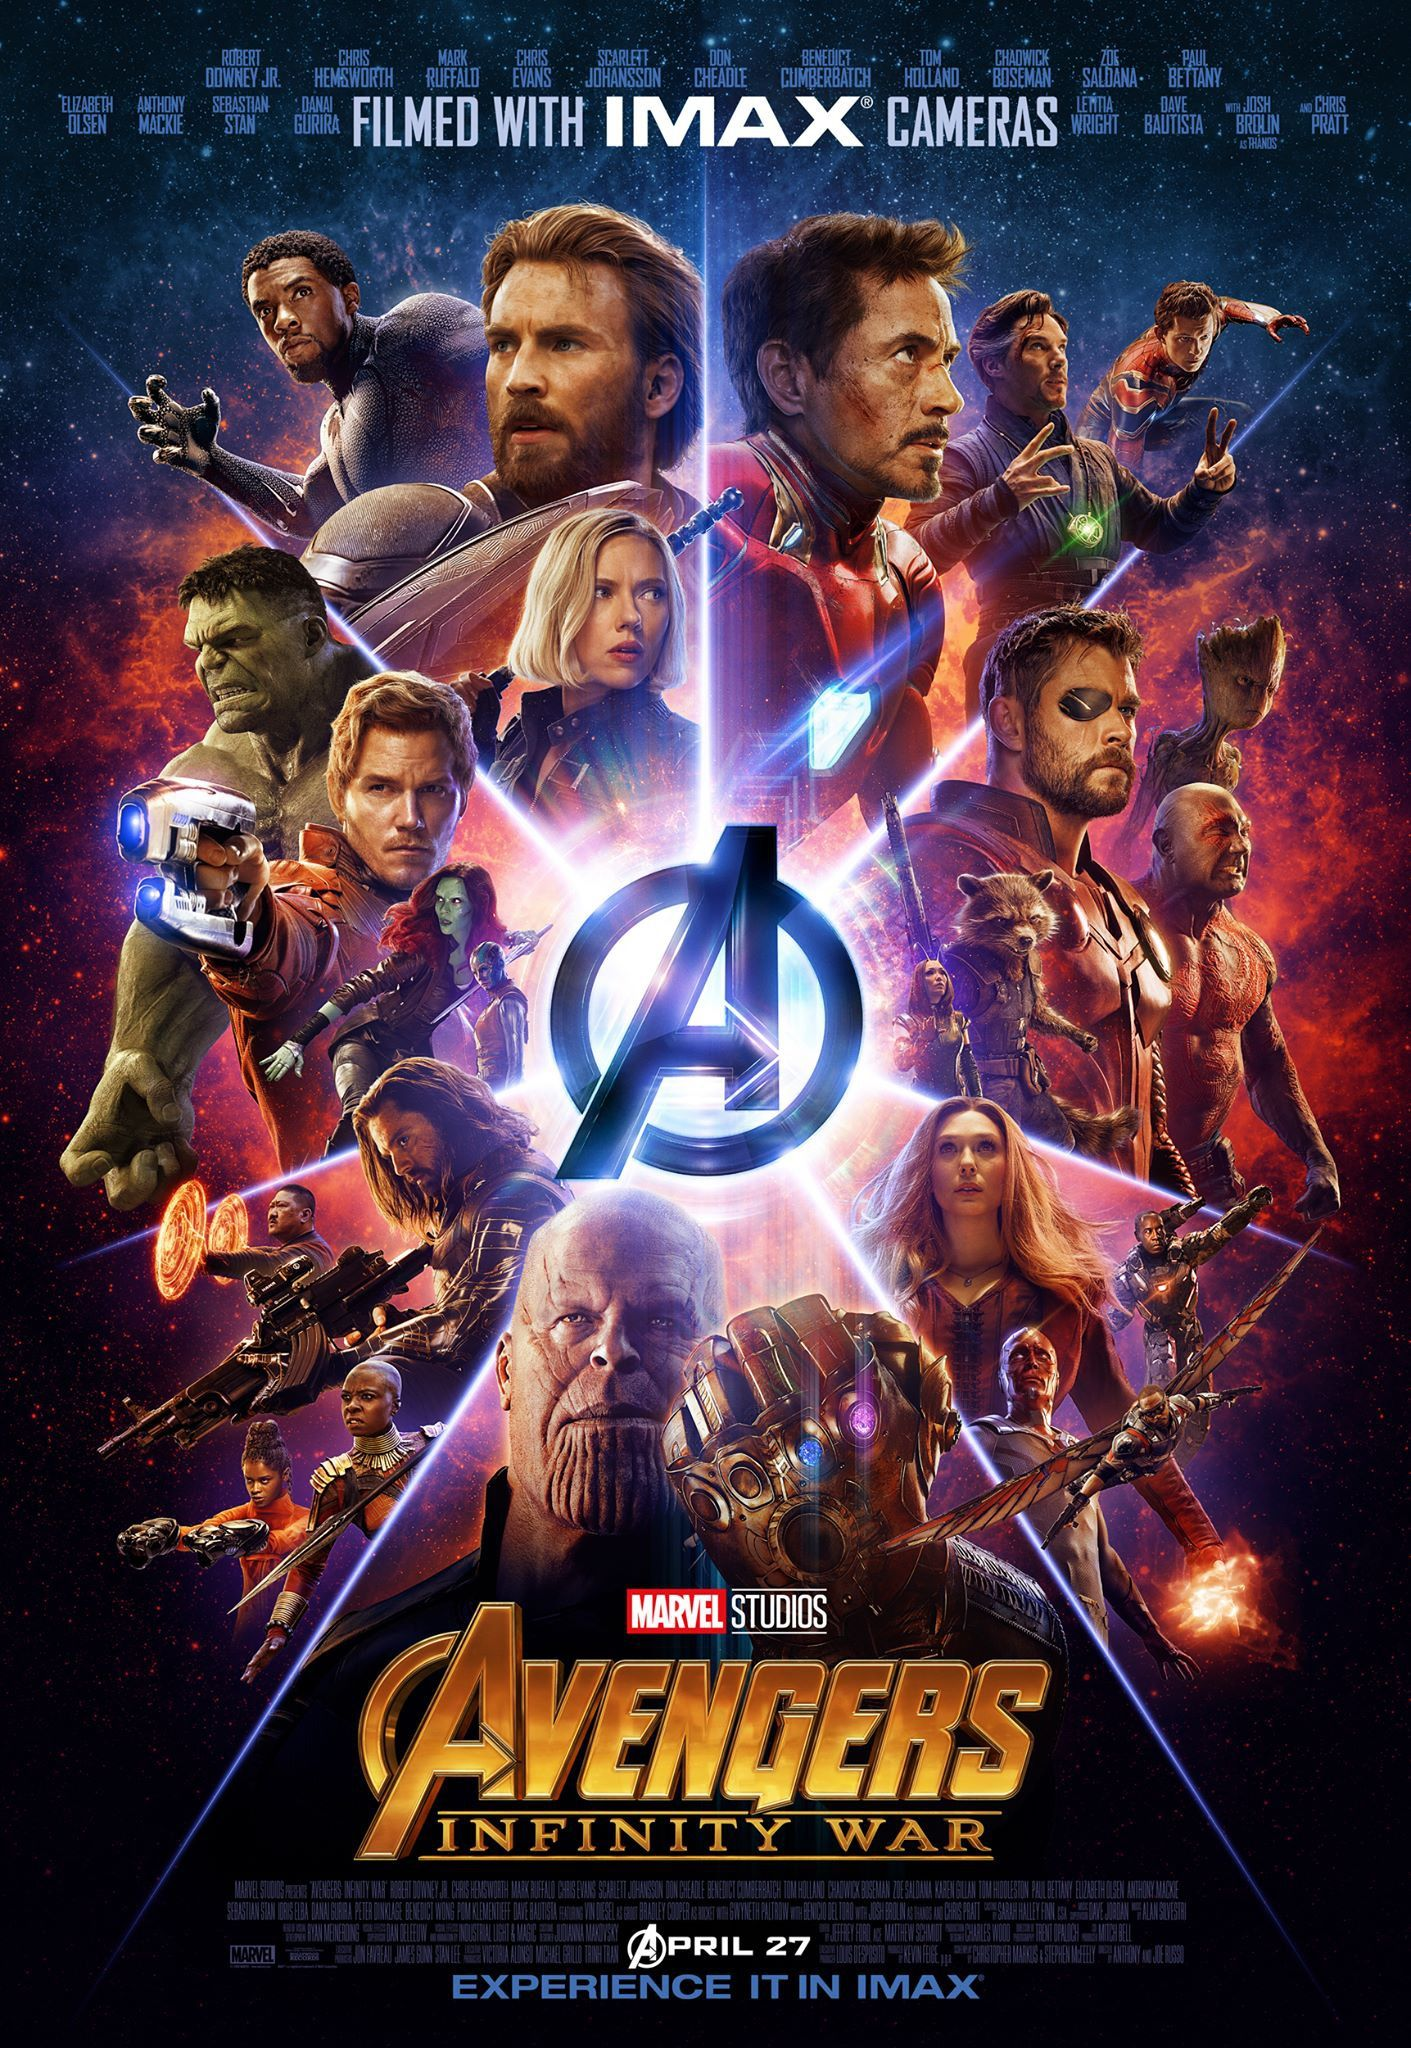 Avengers Infinity War As The Avengers And Their Allies Have